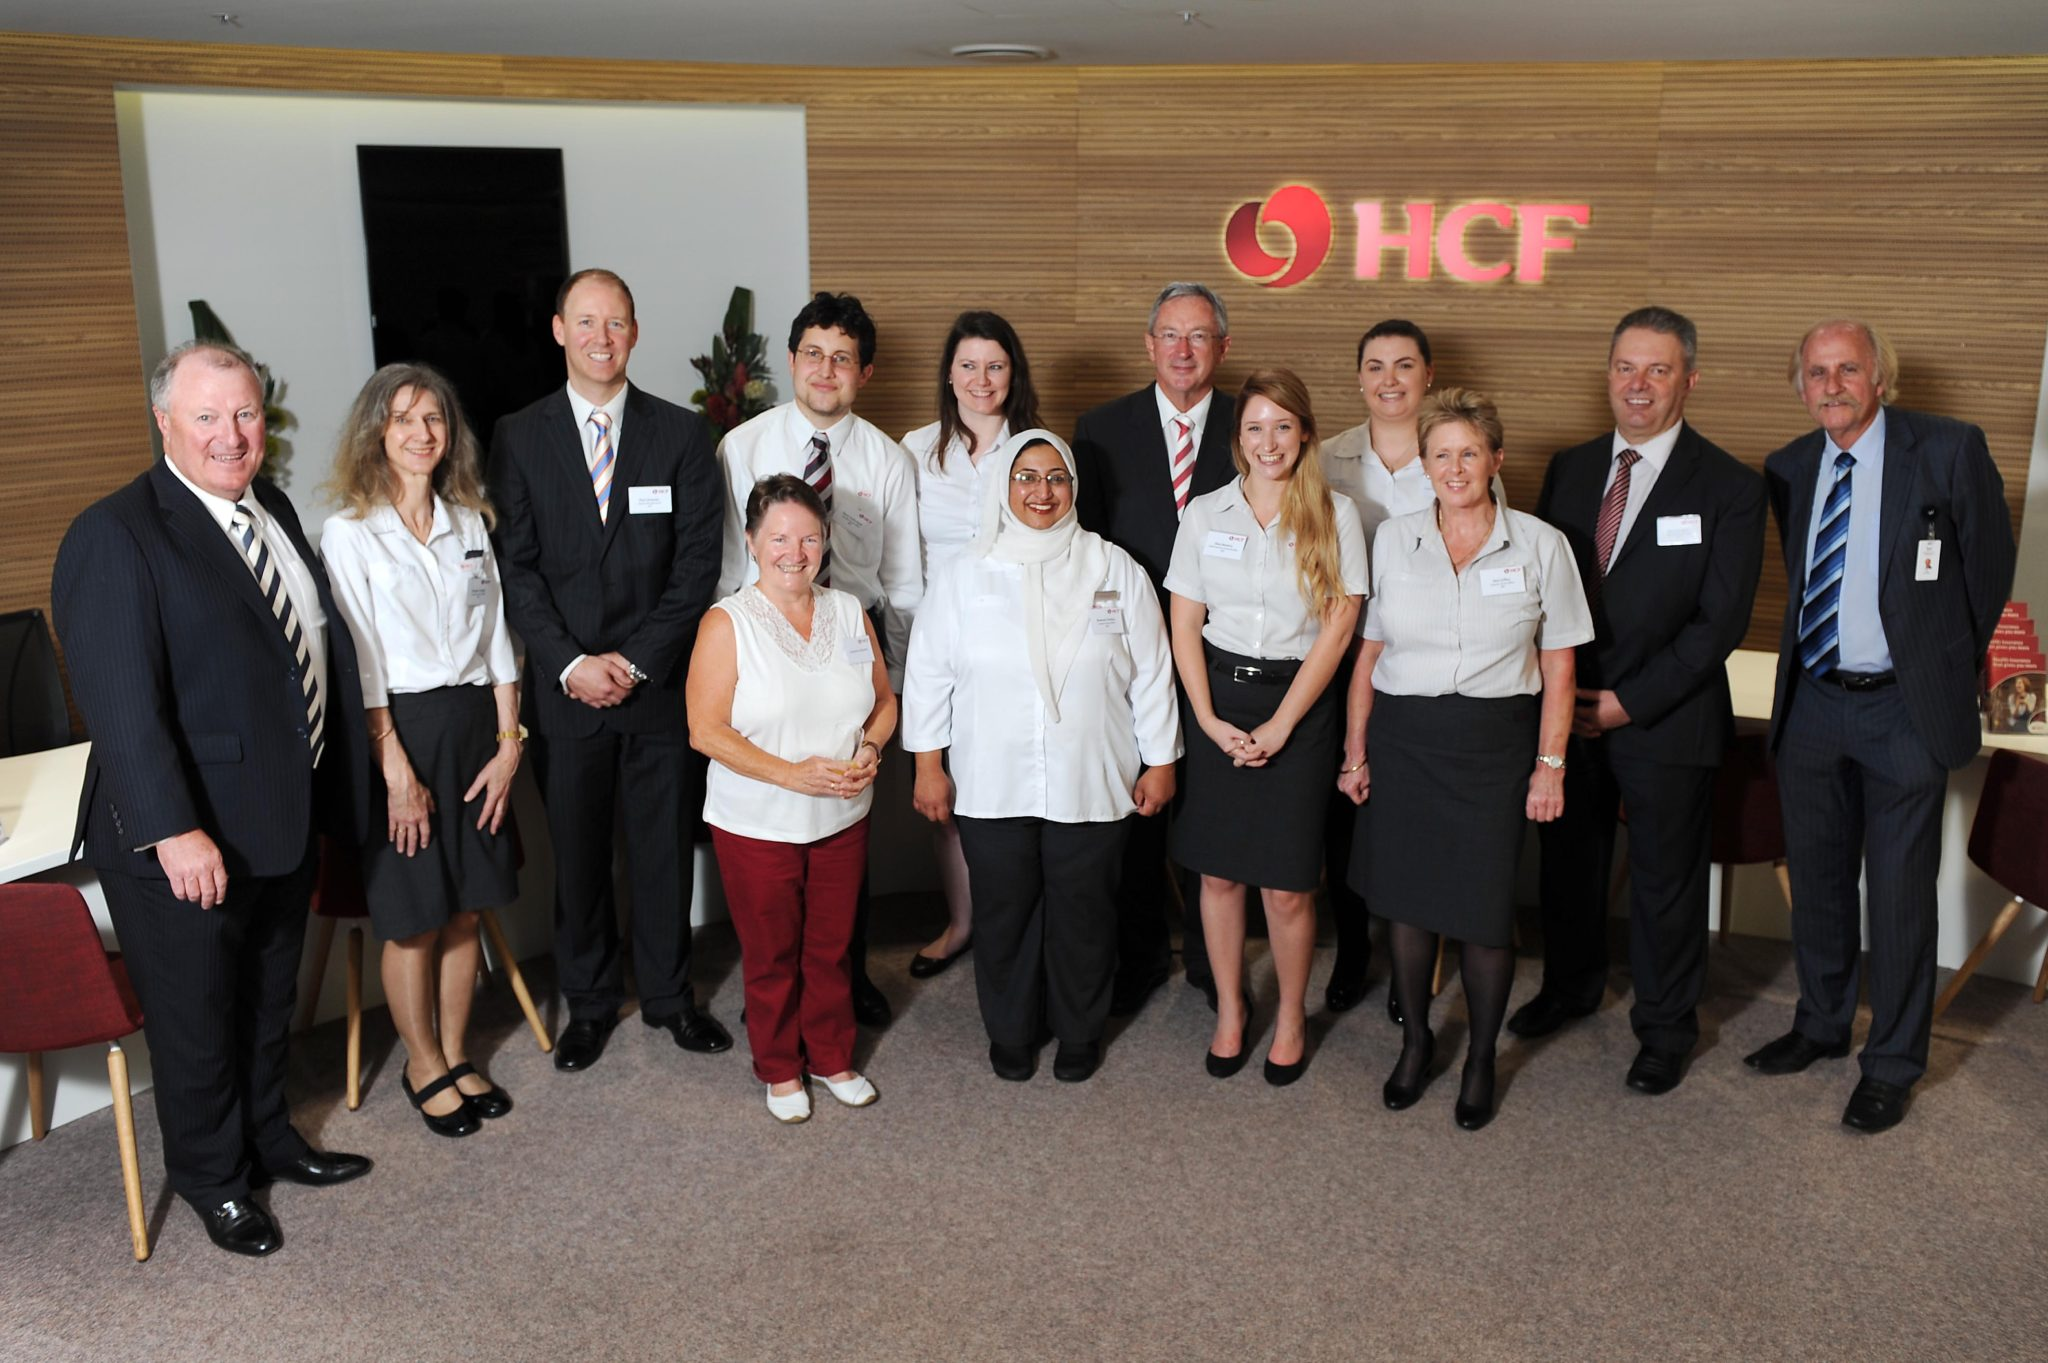 Opening of the new HCF Offices at Warringah Mall